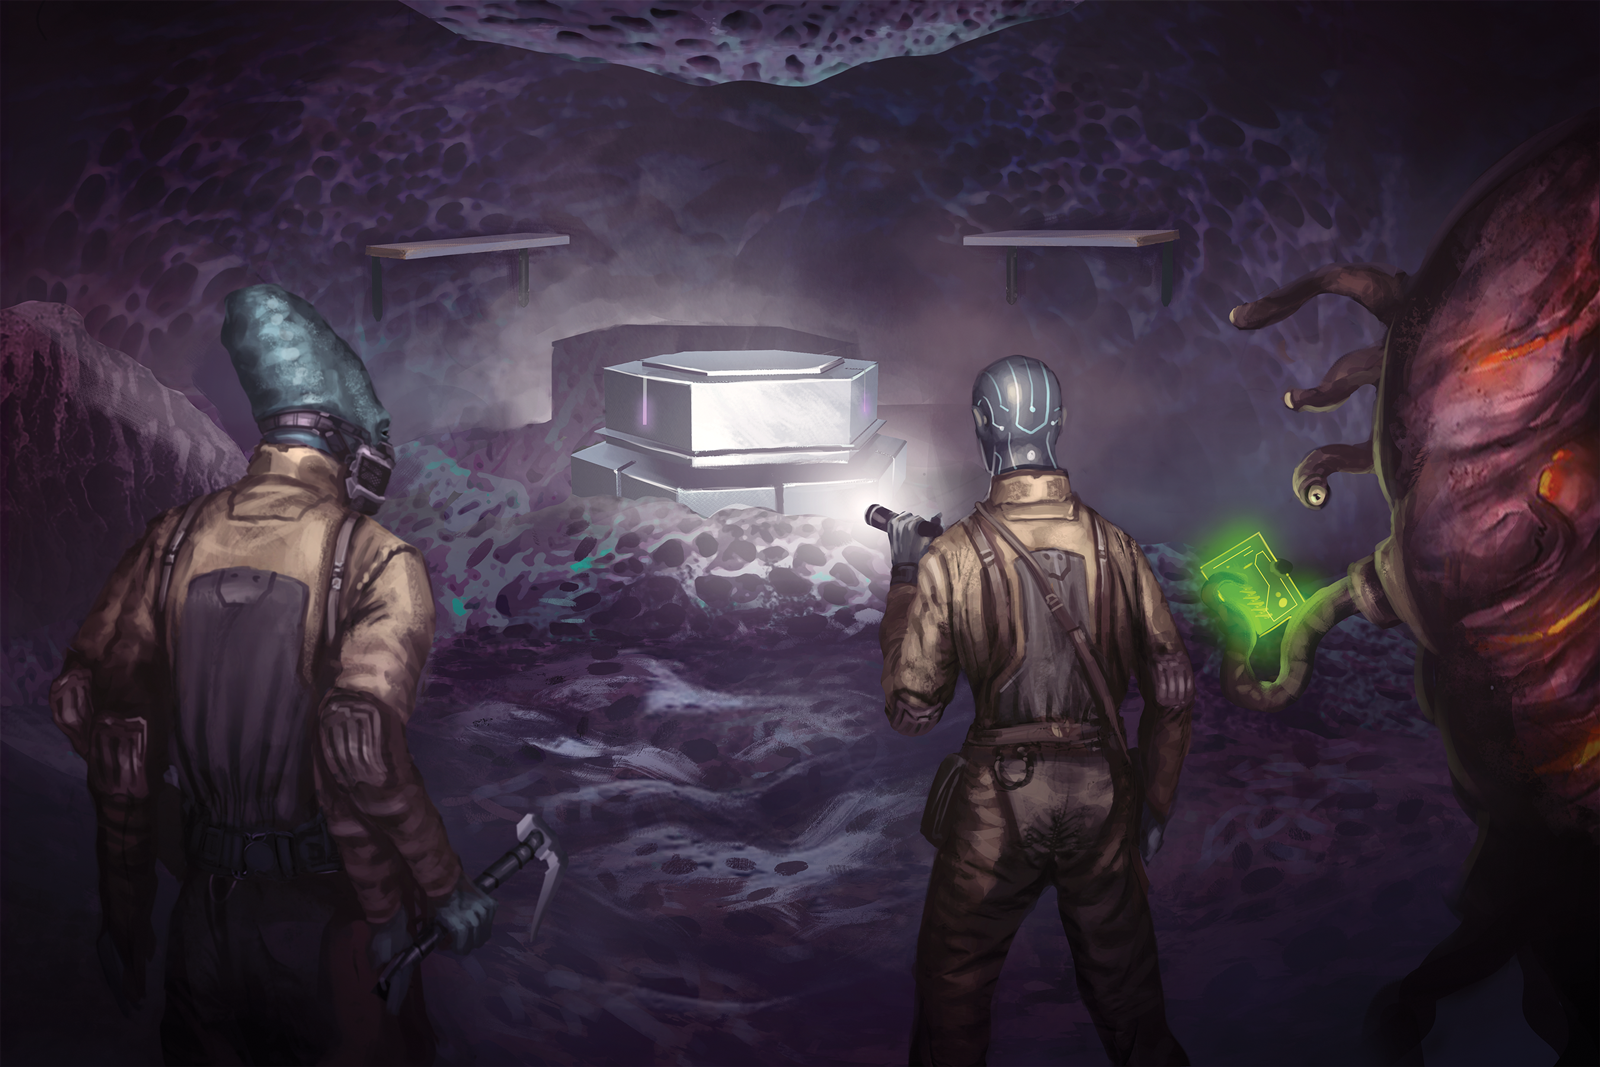 Three figures—an android, a kasatha, and a quorlu—step into a dark chamber, it's walls made of spongy-looking purple material of unknown origin. In the center of the chamber, illuminated by their flashlights, stands a hexagonal metal pedestal, which is giving off a faint glow.